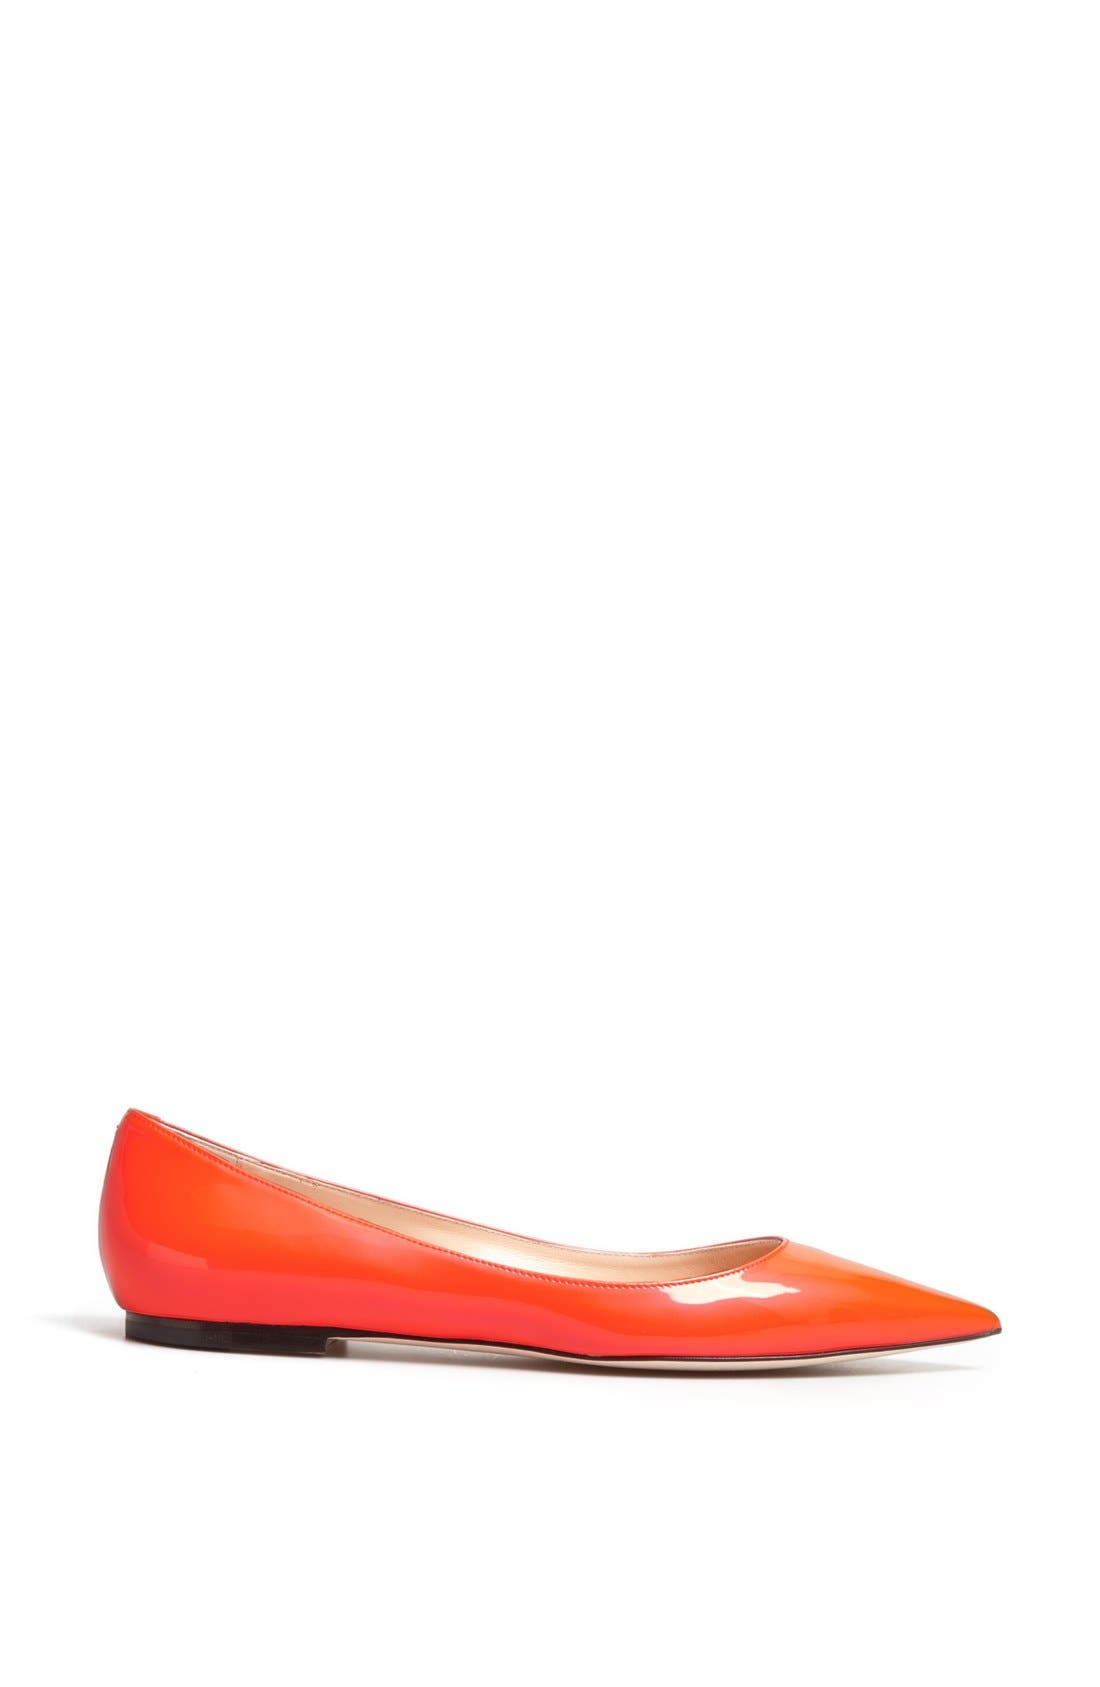 Alternate Image 3  - Jimmy Choo 'Alina' Pointy Toe Flat